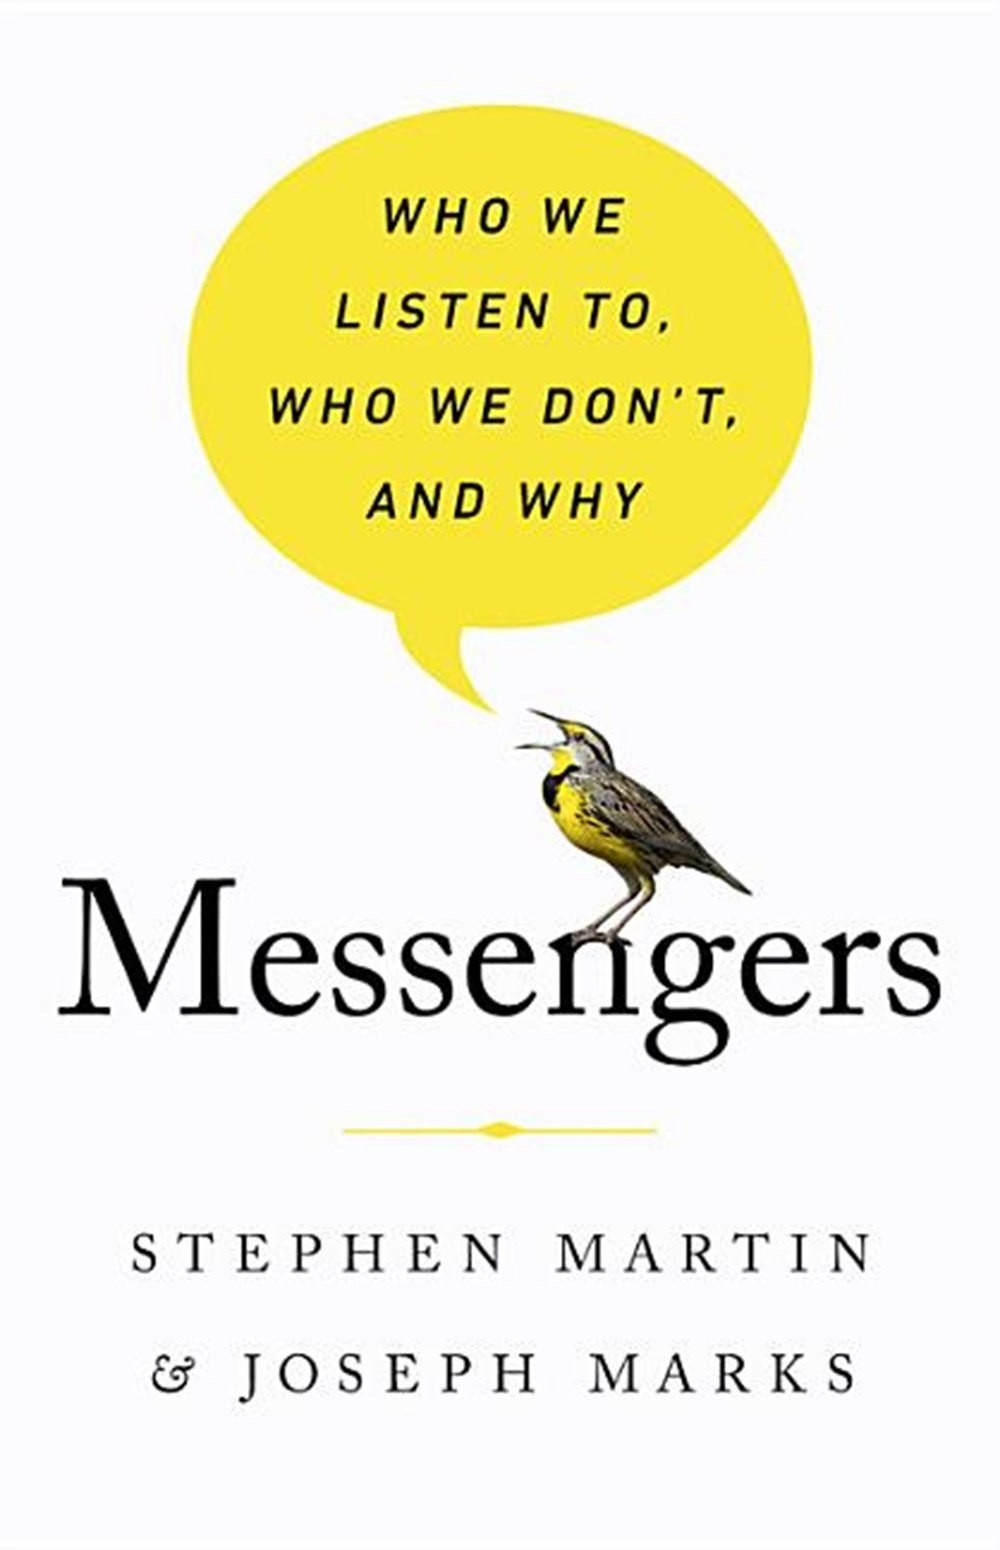 Messengers Who We Listen To, Who We Don't, and Why